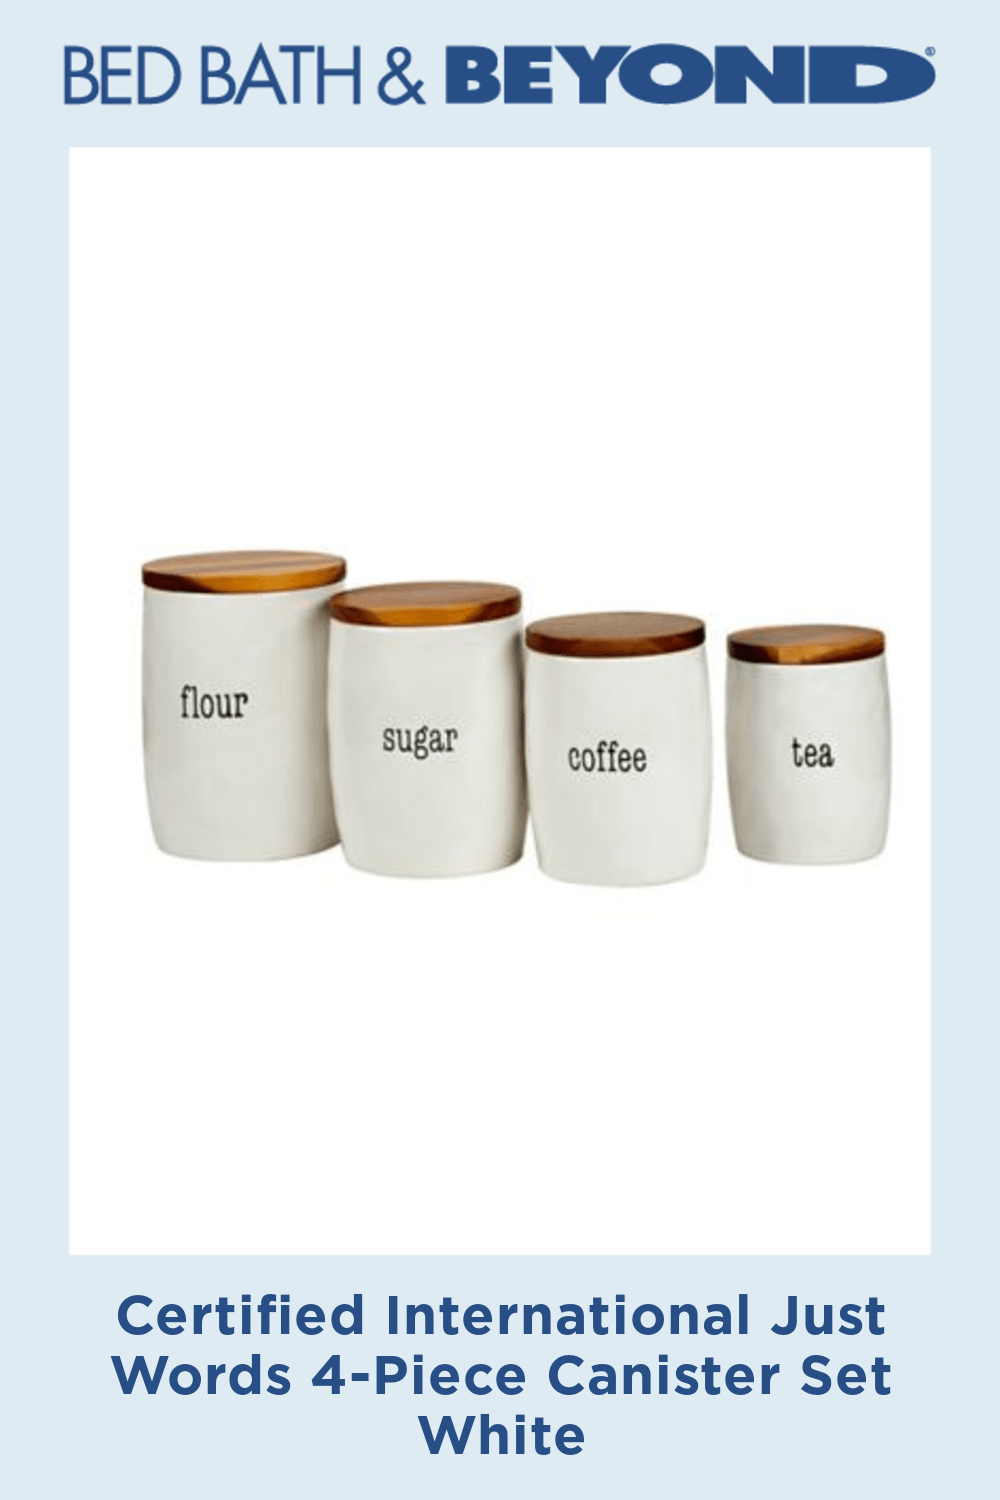 Certified International Just Words 4-Piece Canister Set